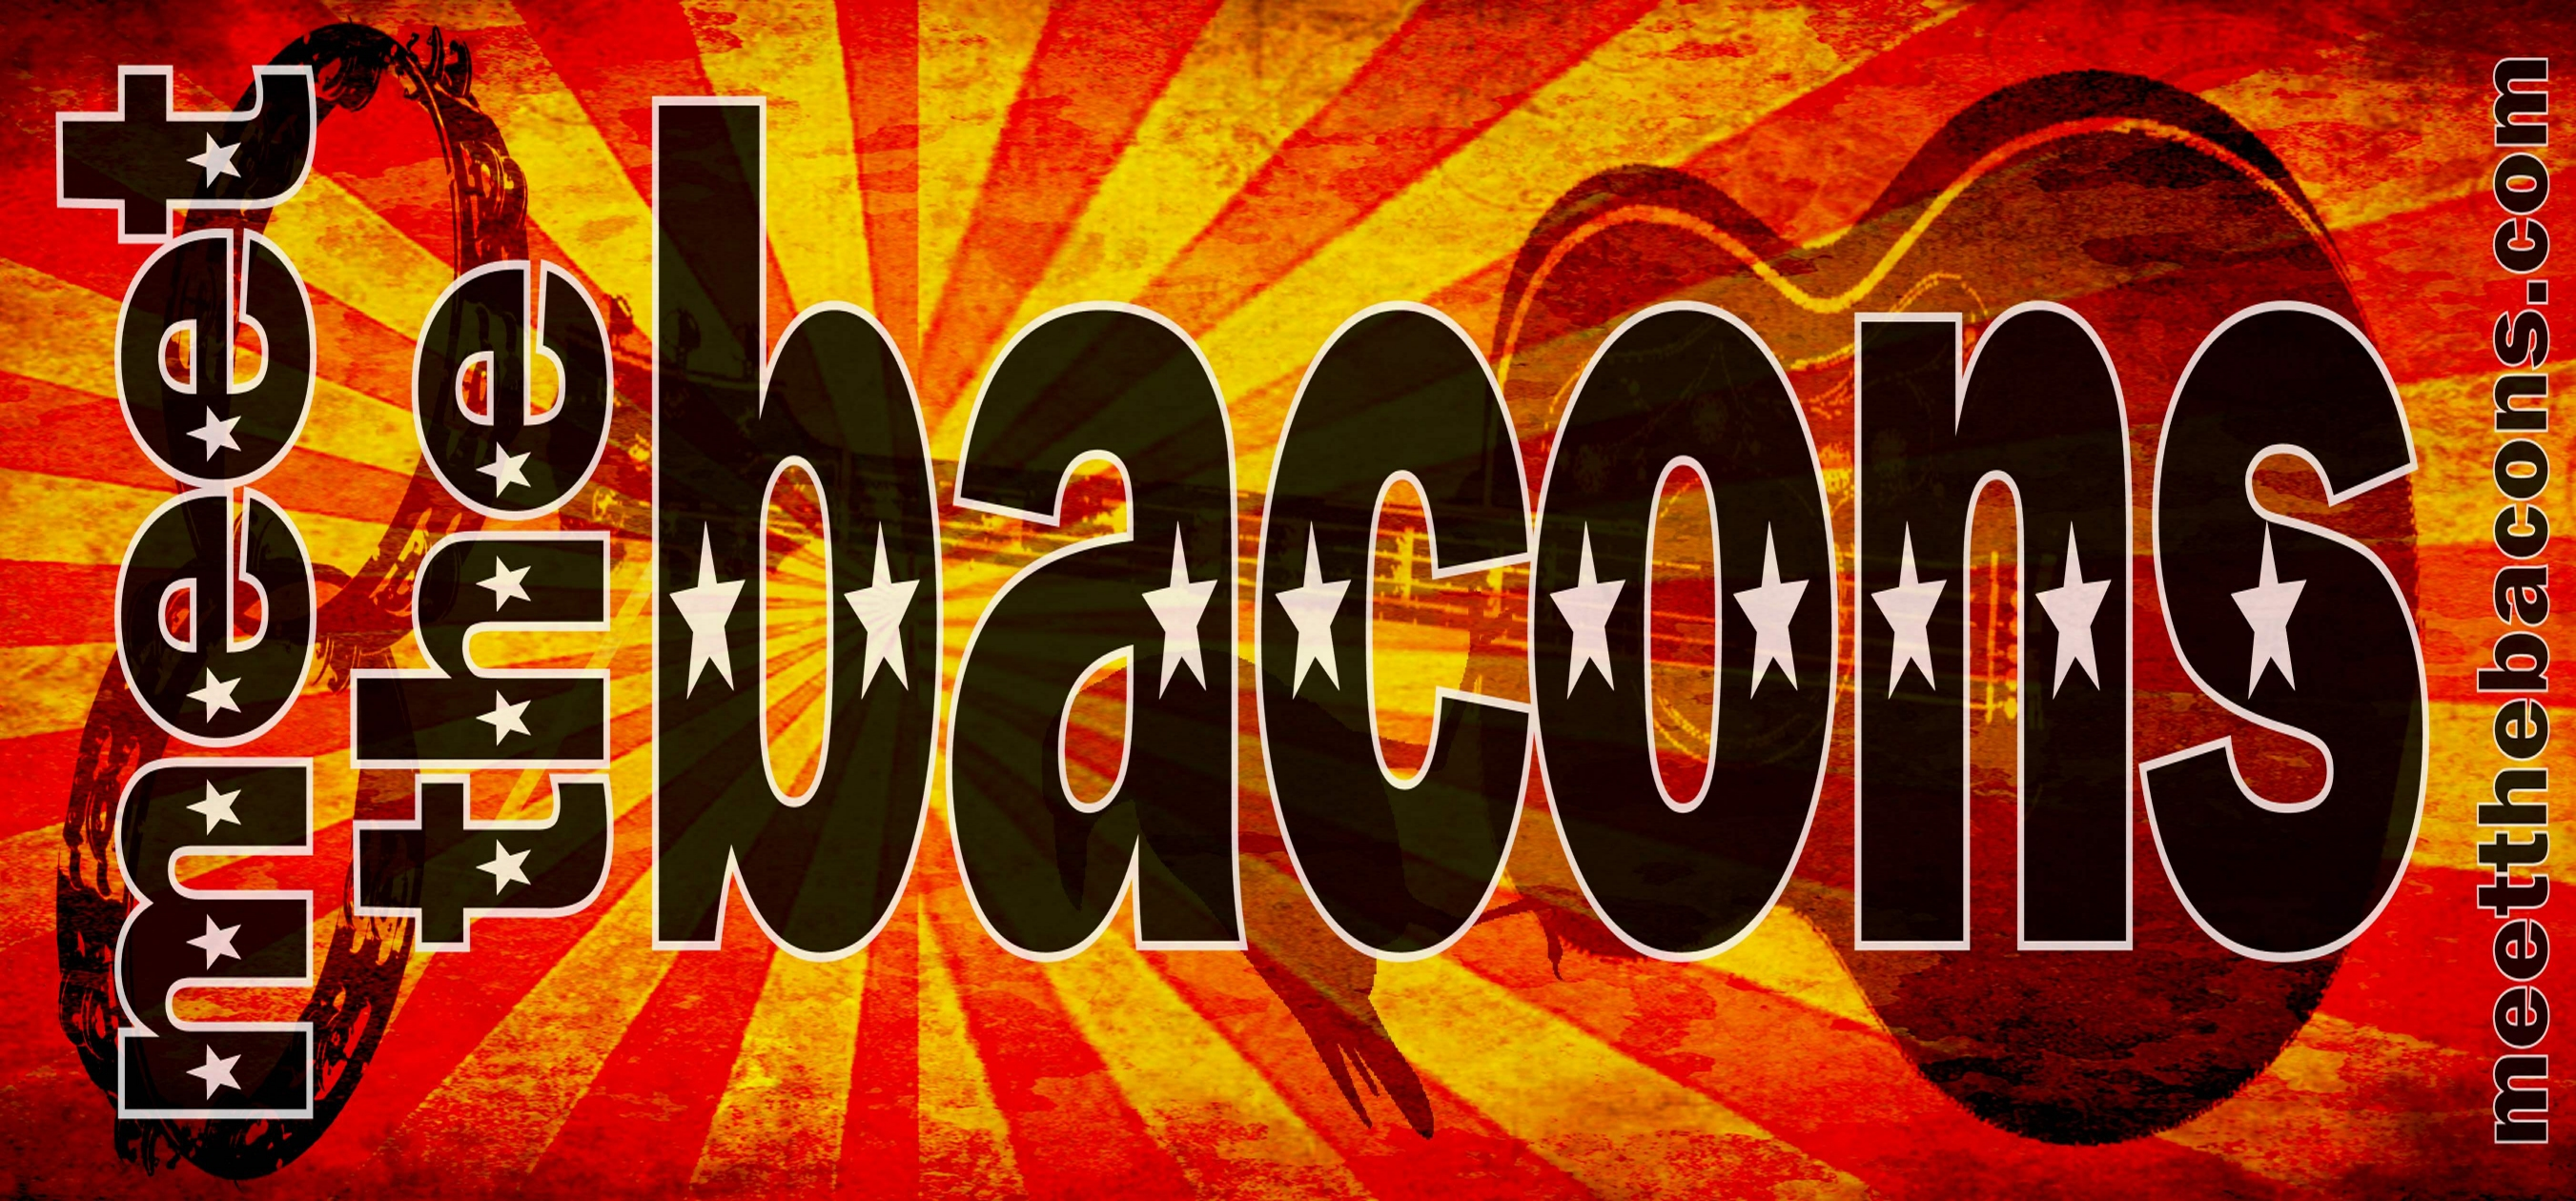 Meet The Bacons Venue Info Info And Specifics For Performances